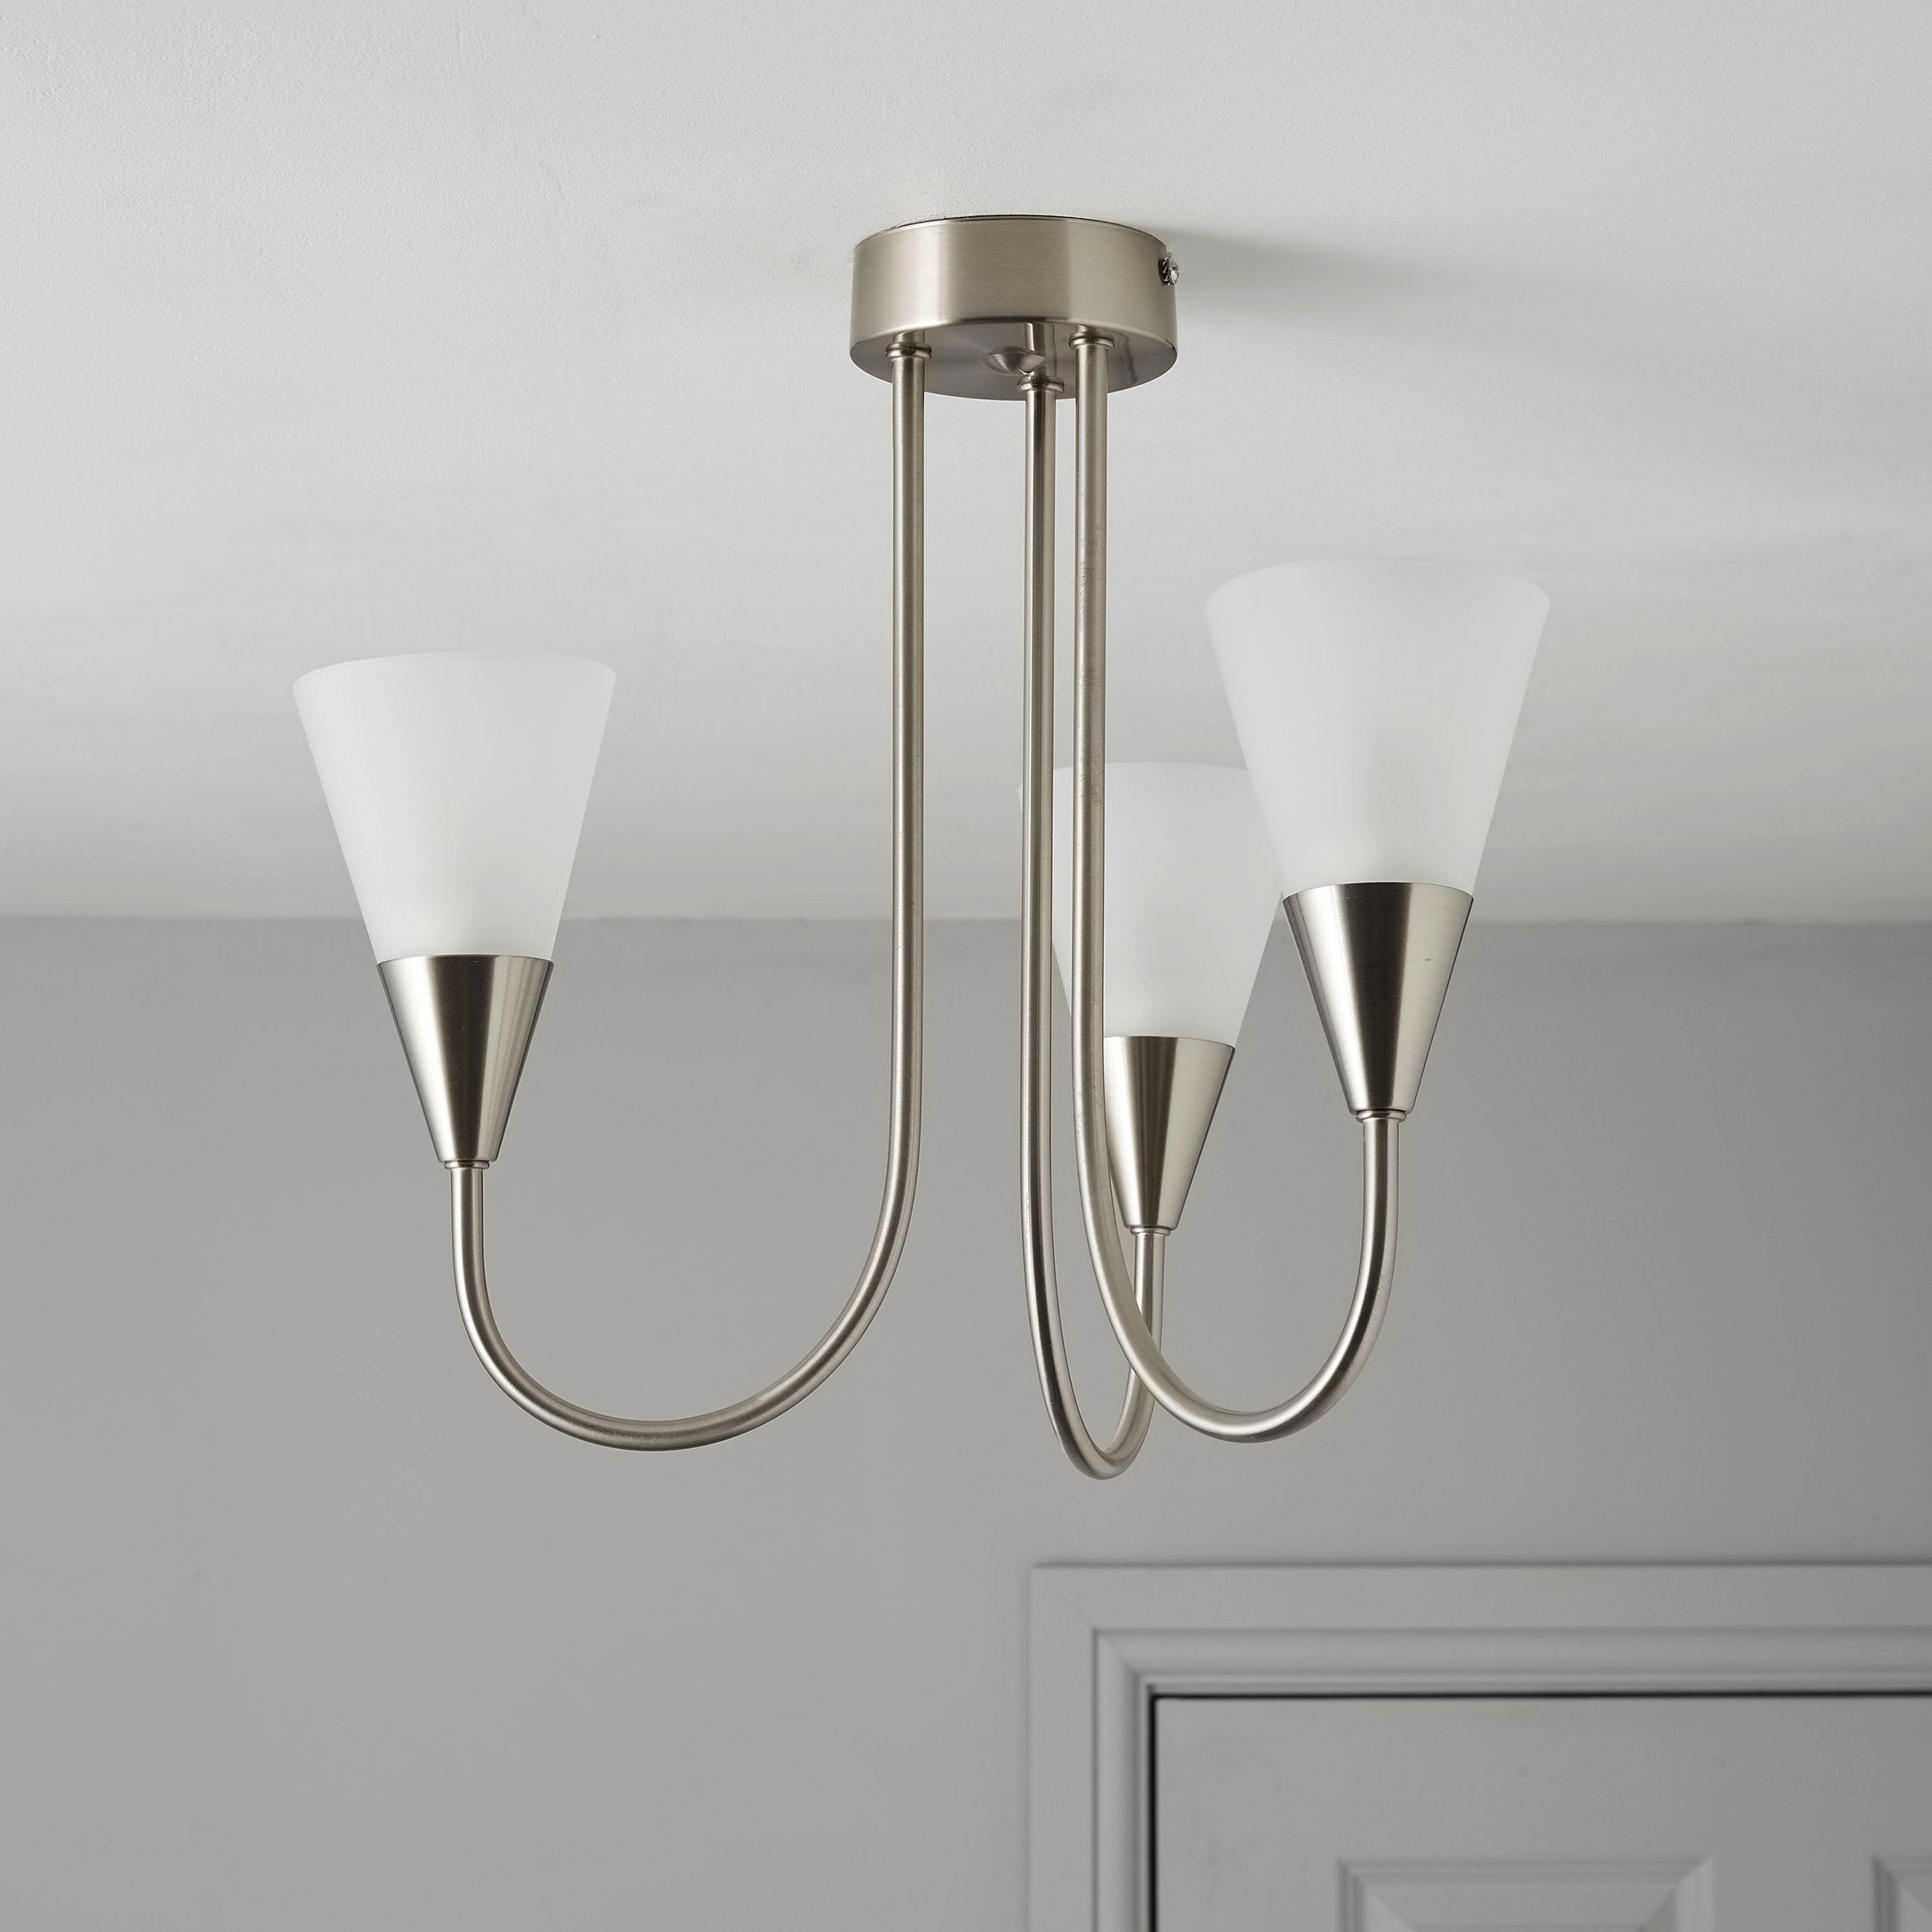 2019 Ceiling Light Fittings B&q #2 Reya Nickel Effect 3 Lamp Pendant Regarding Outdoor Ceiling Lights At B&q (Gallery 18 of 20)